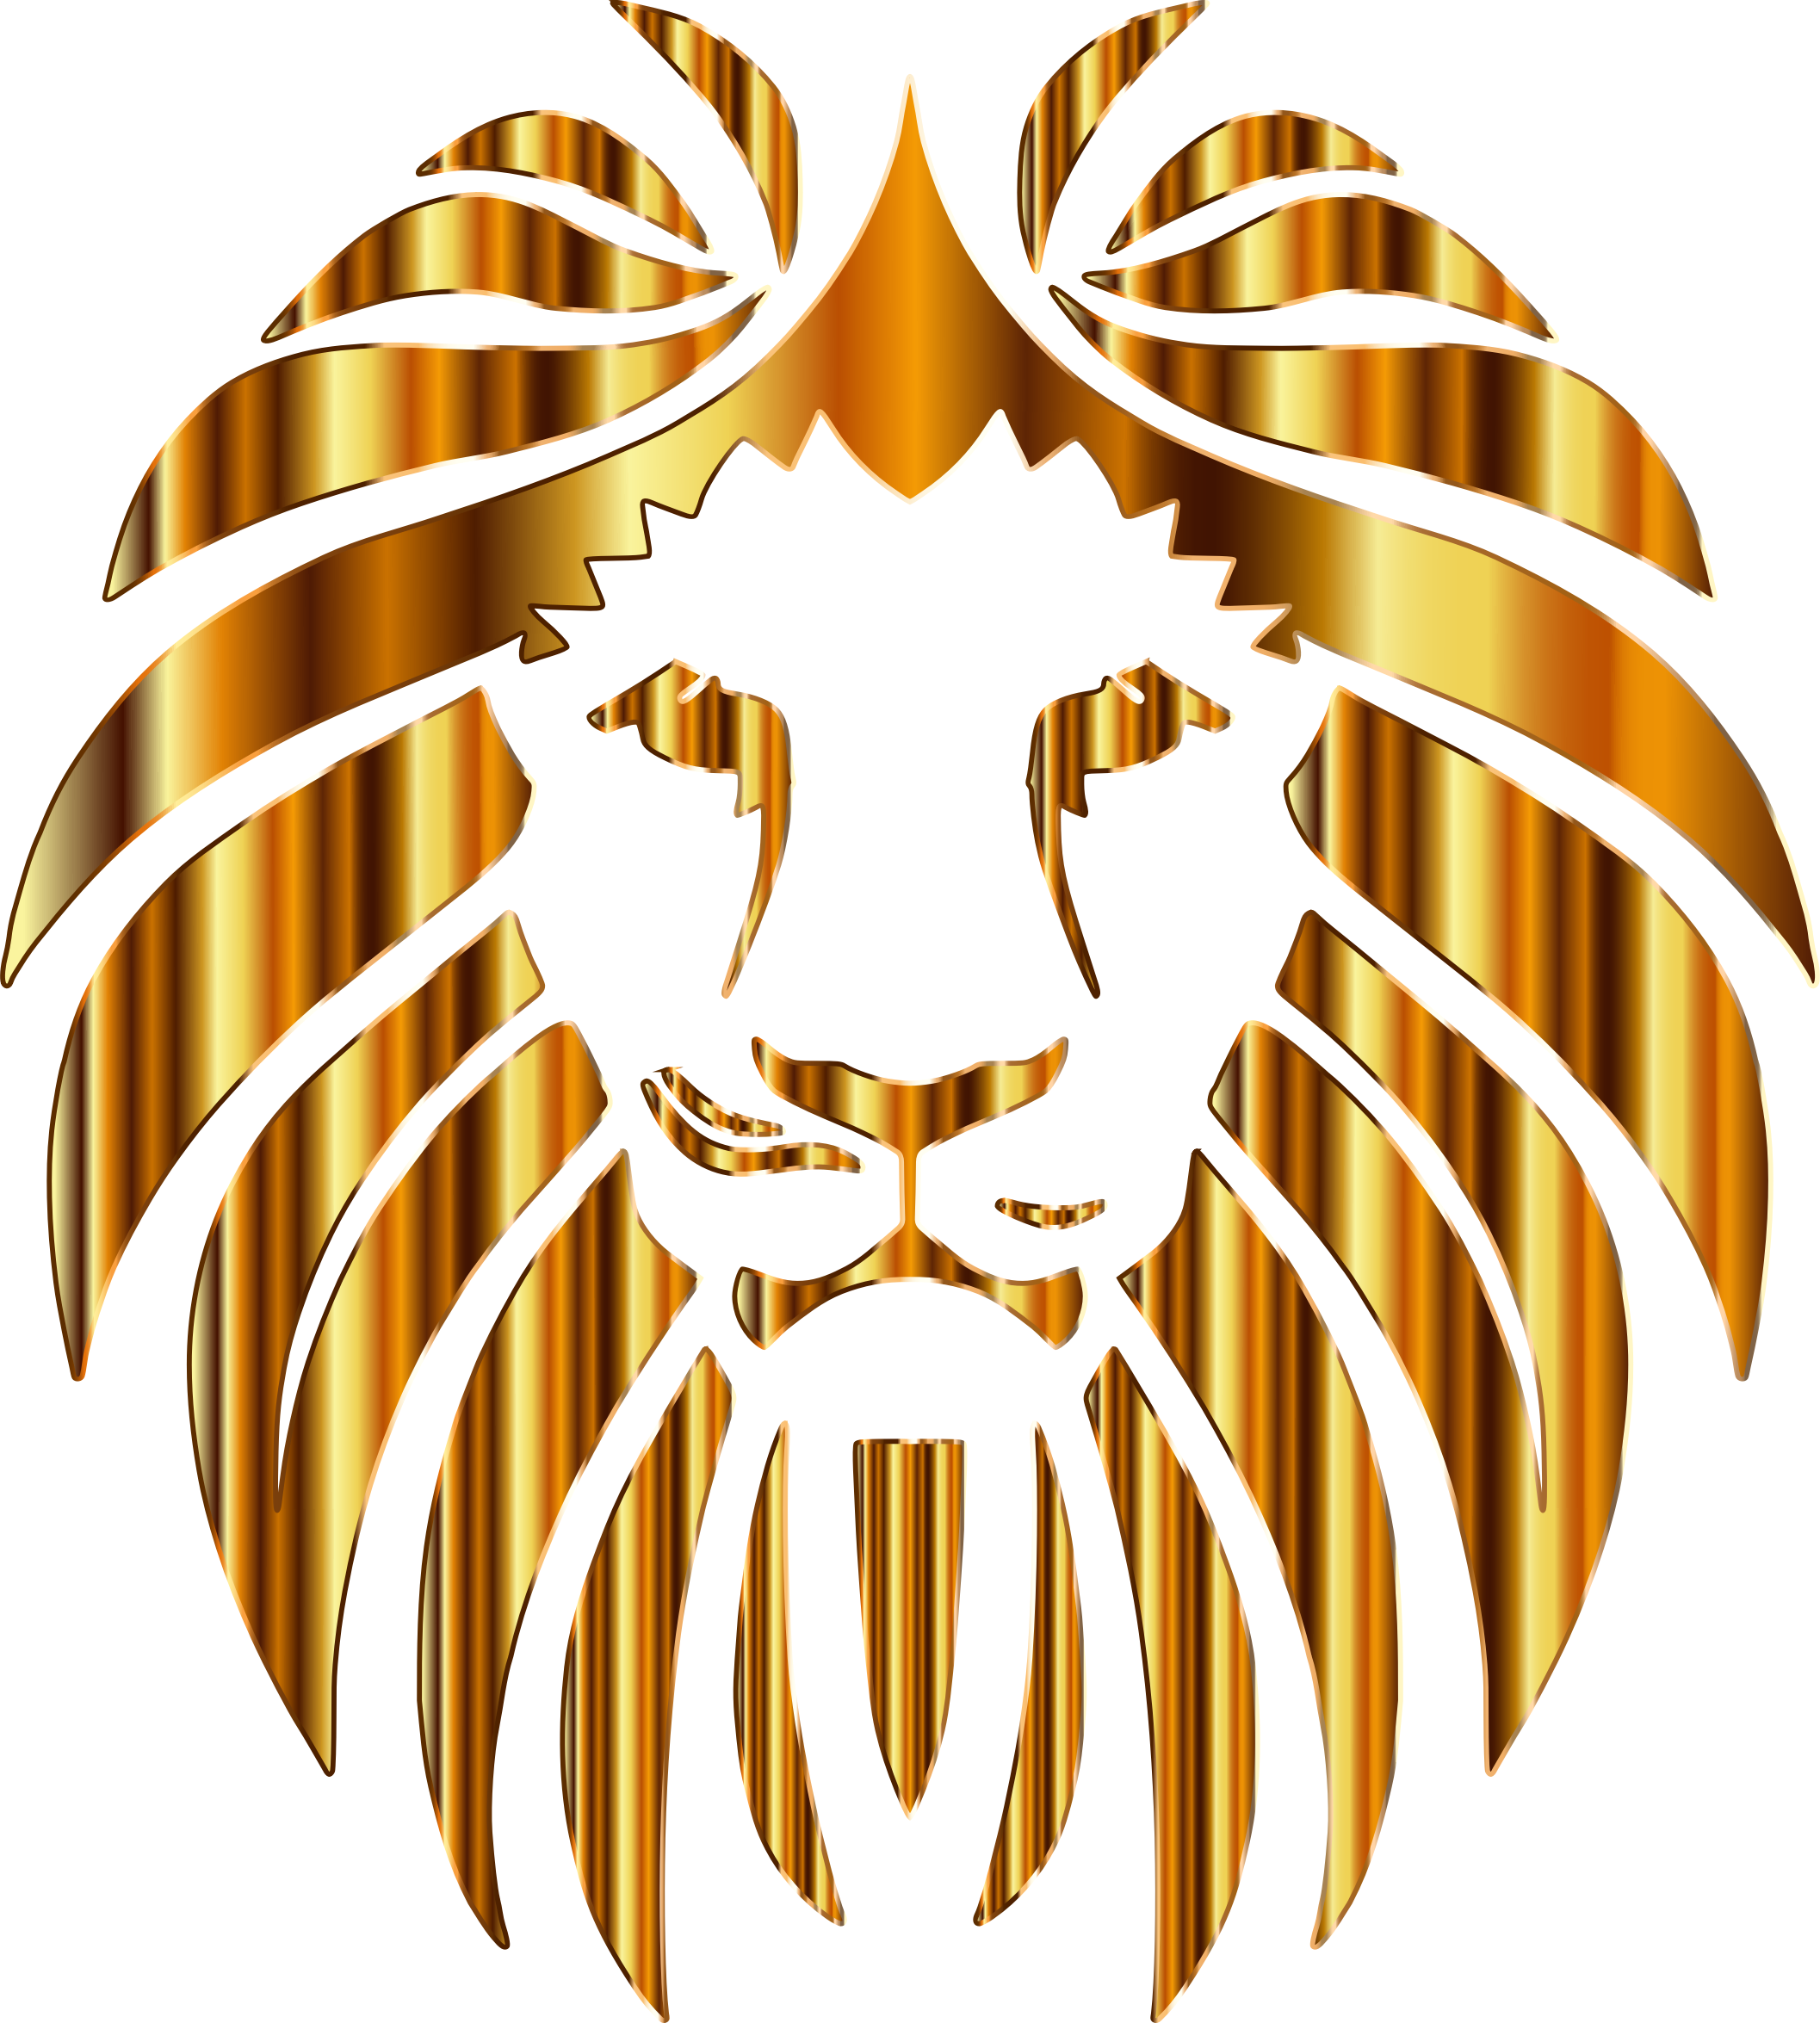 Golden Lion 10 No Background by GDJ